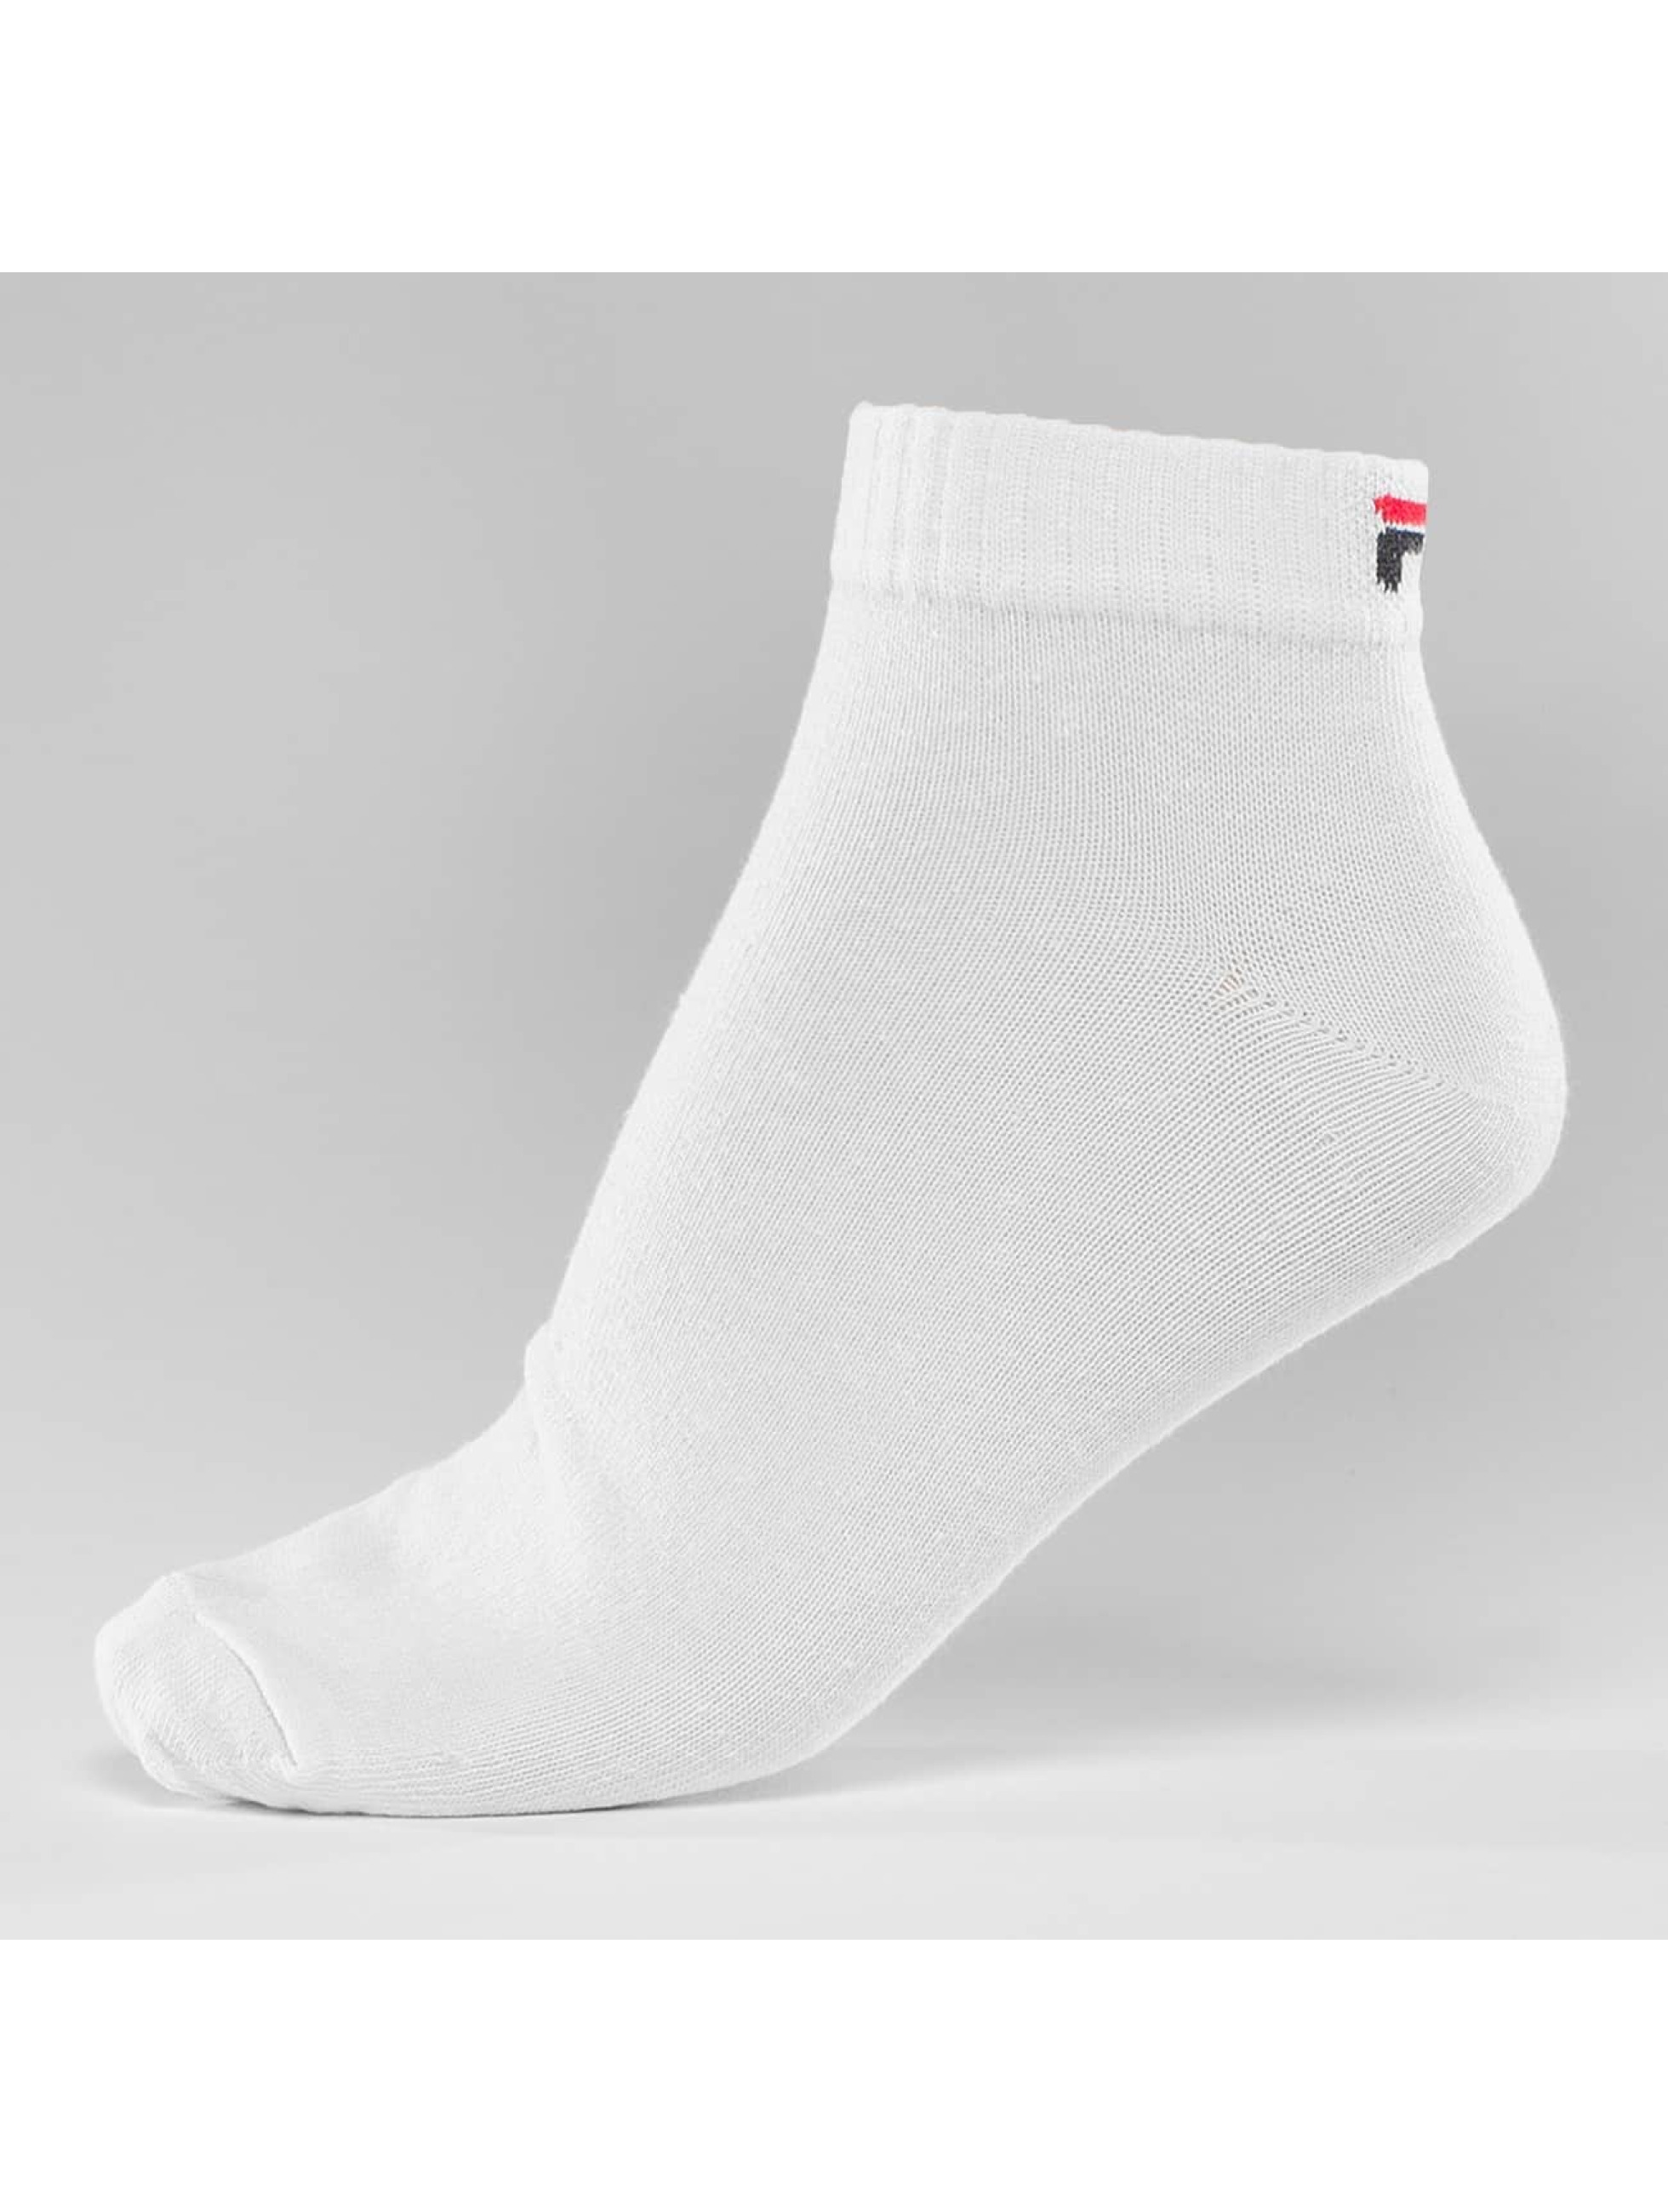 FILA Calcetines 3-Pack Training blanco